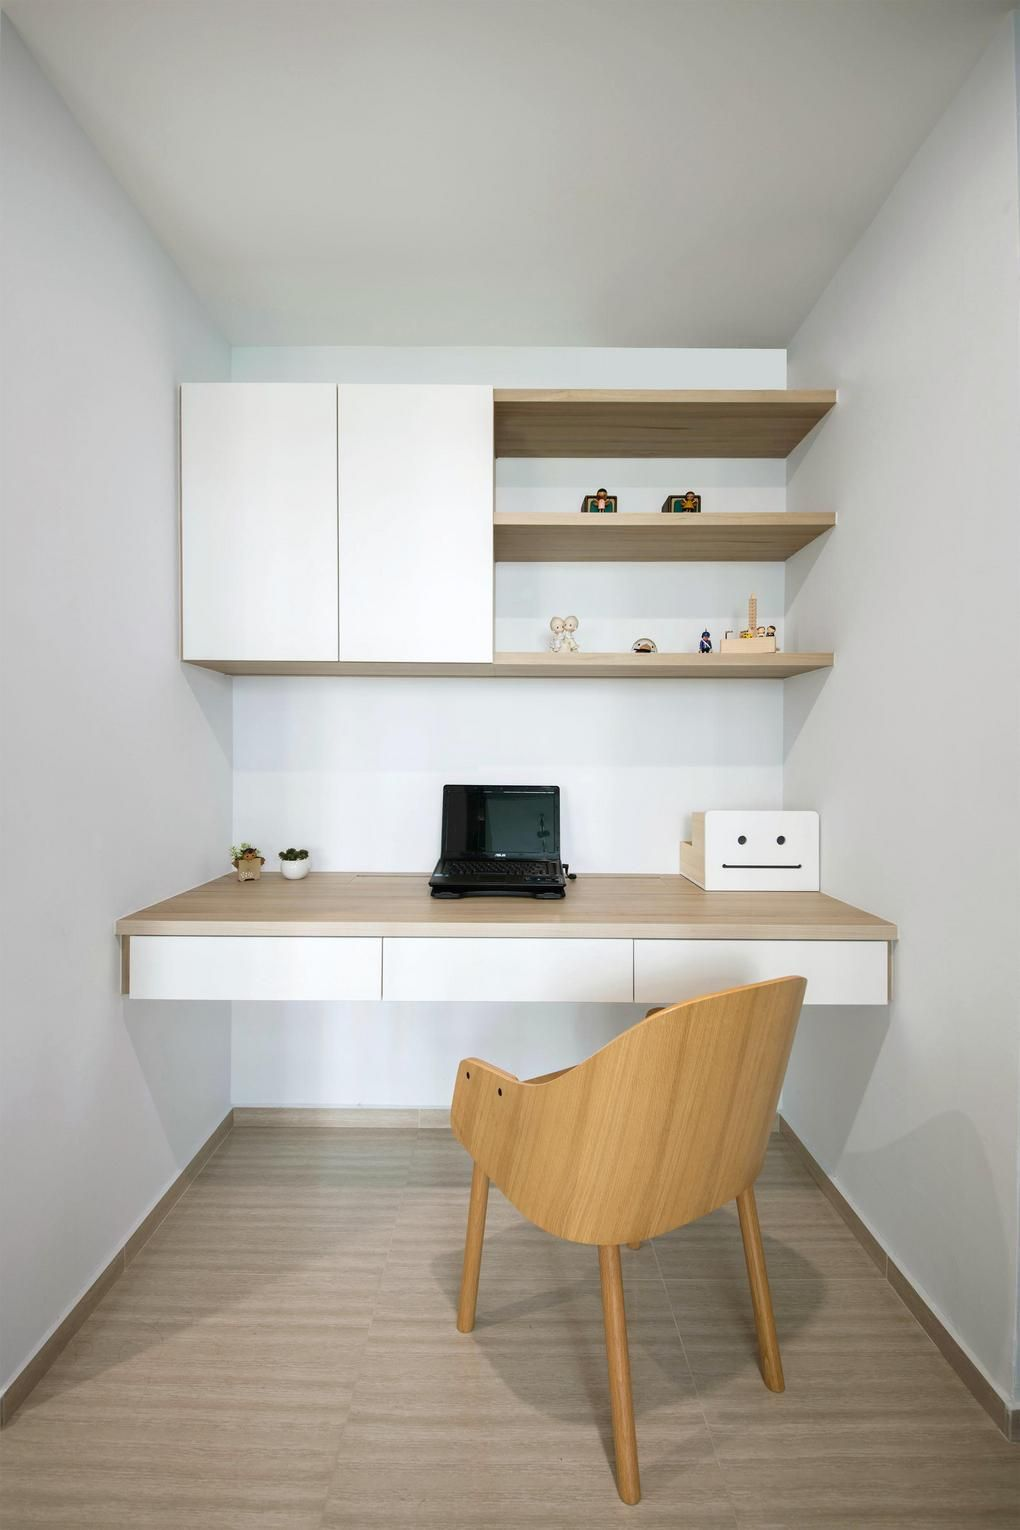 00b7fbea12e9972c73c4fed0f68299a4 - View Very Small Home Office Design Ideas  Background